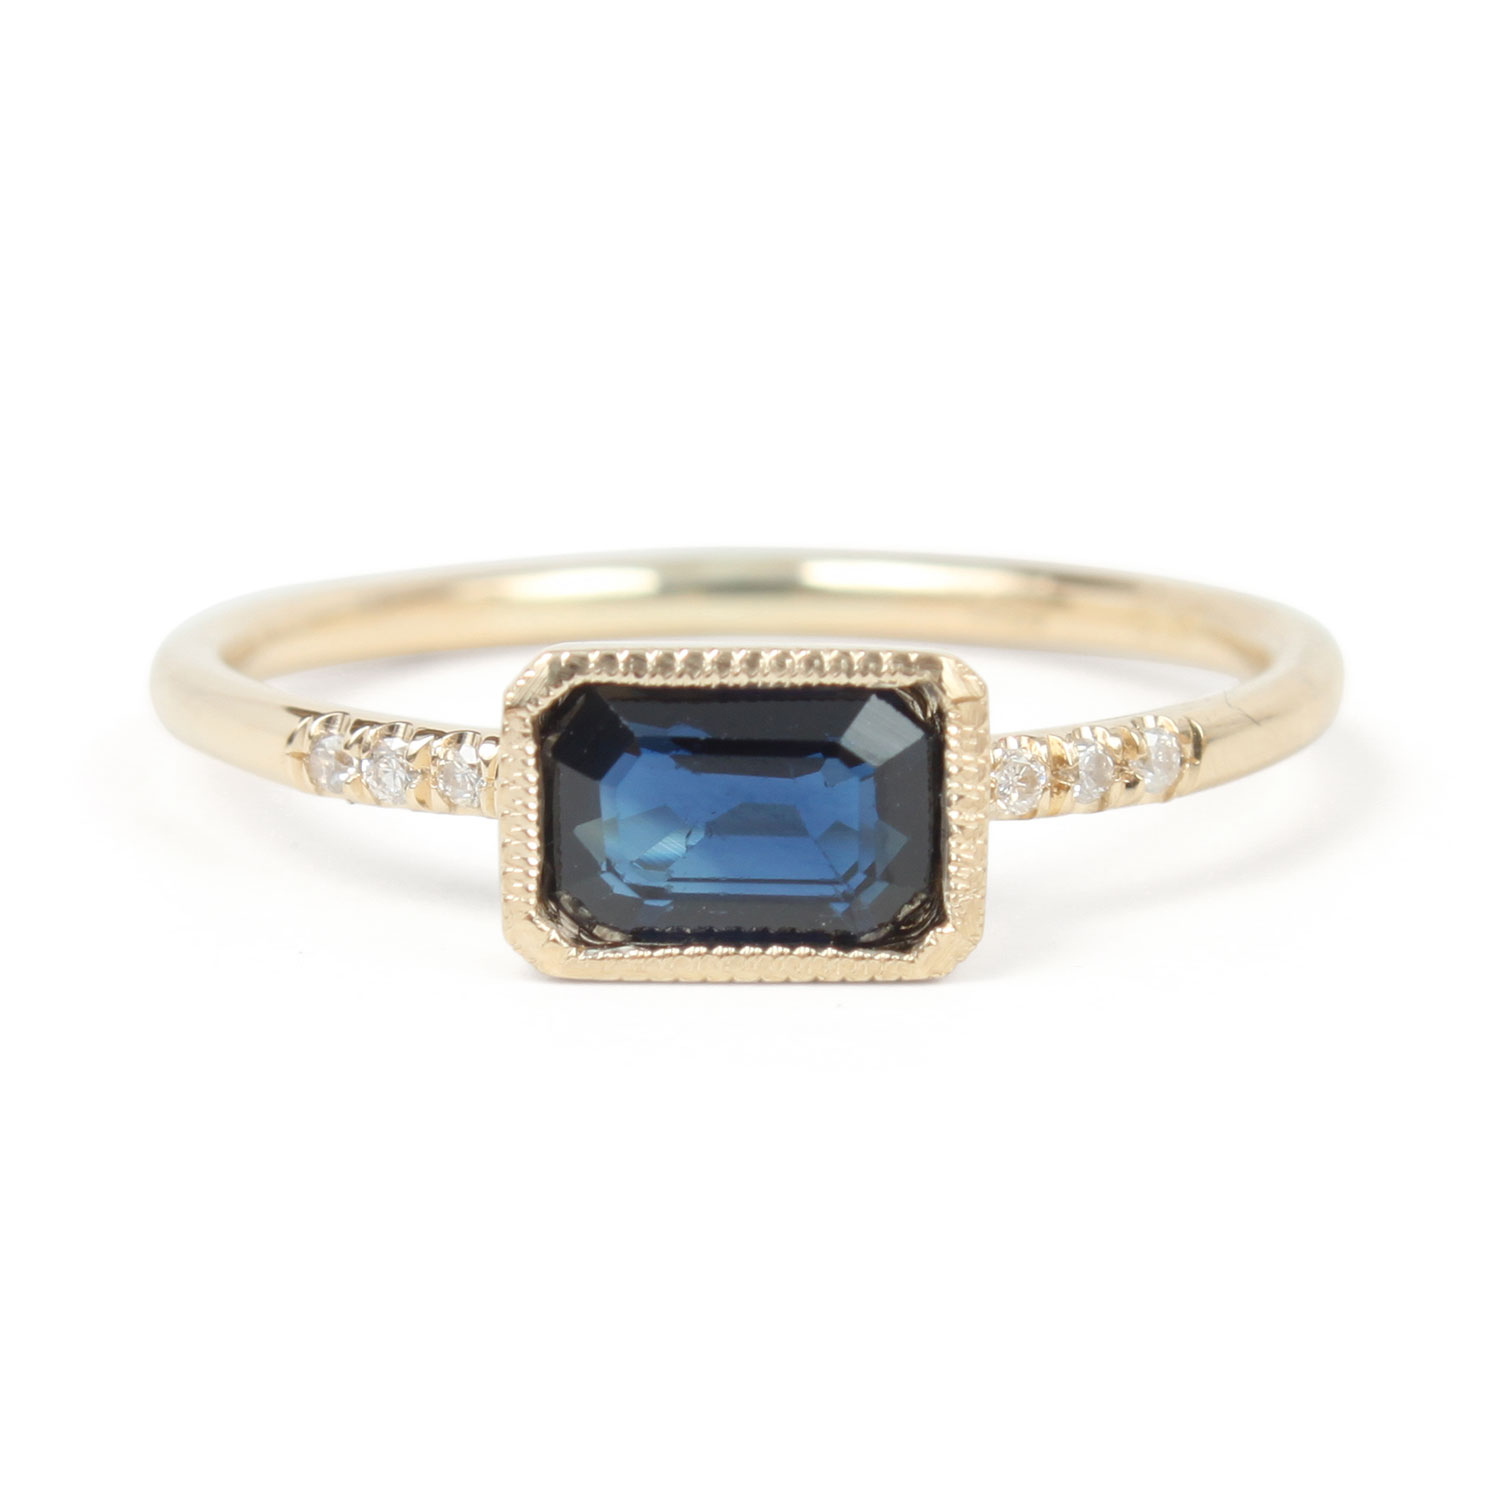 is shared m gold white prong a this piece ring classic everyday flynn band our boston shop sapphire eternity